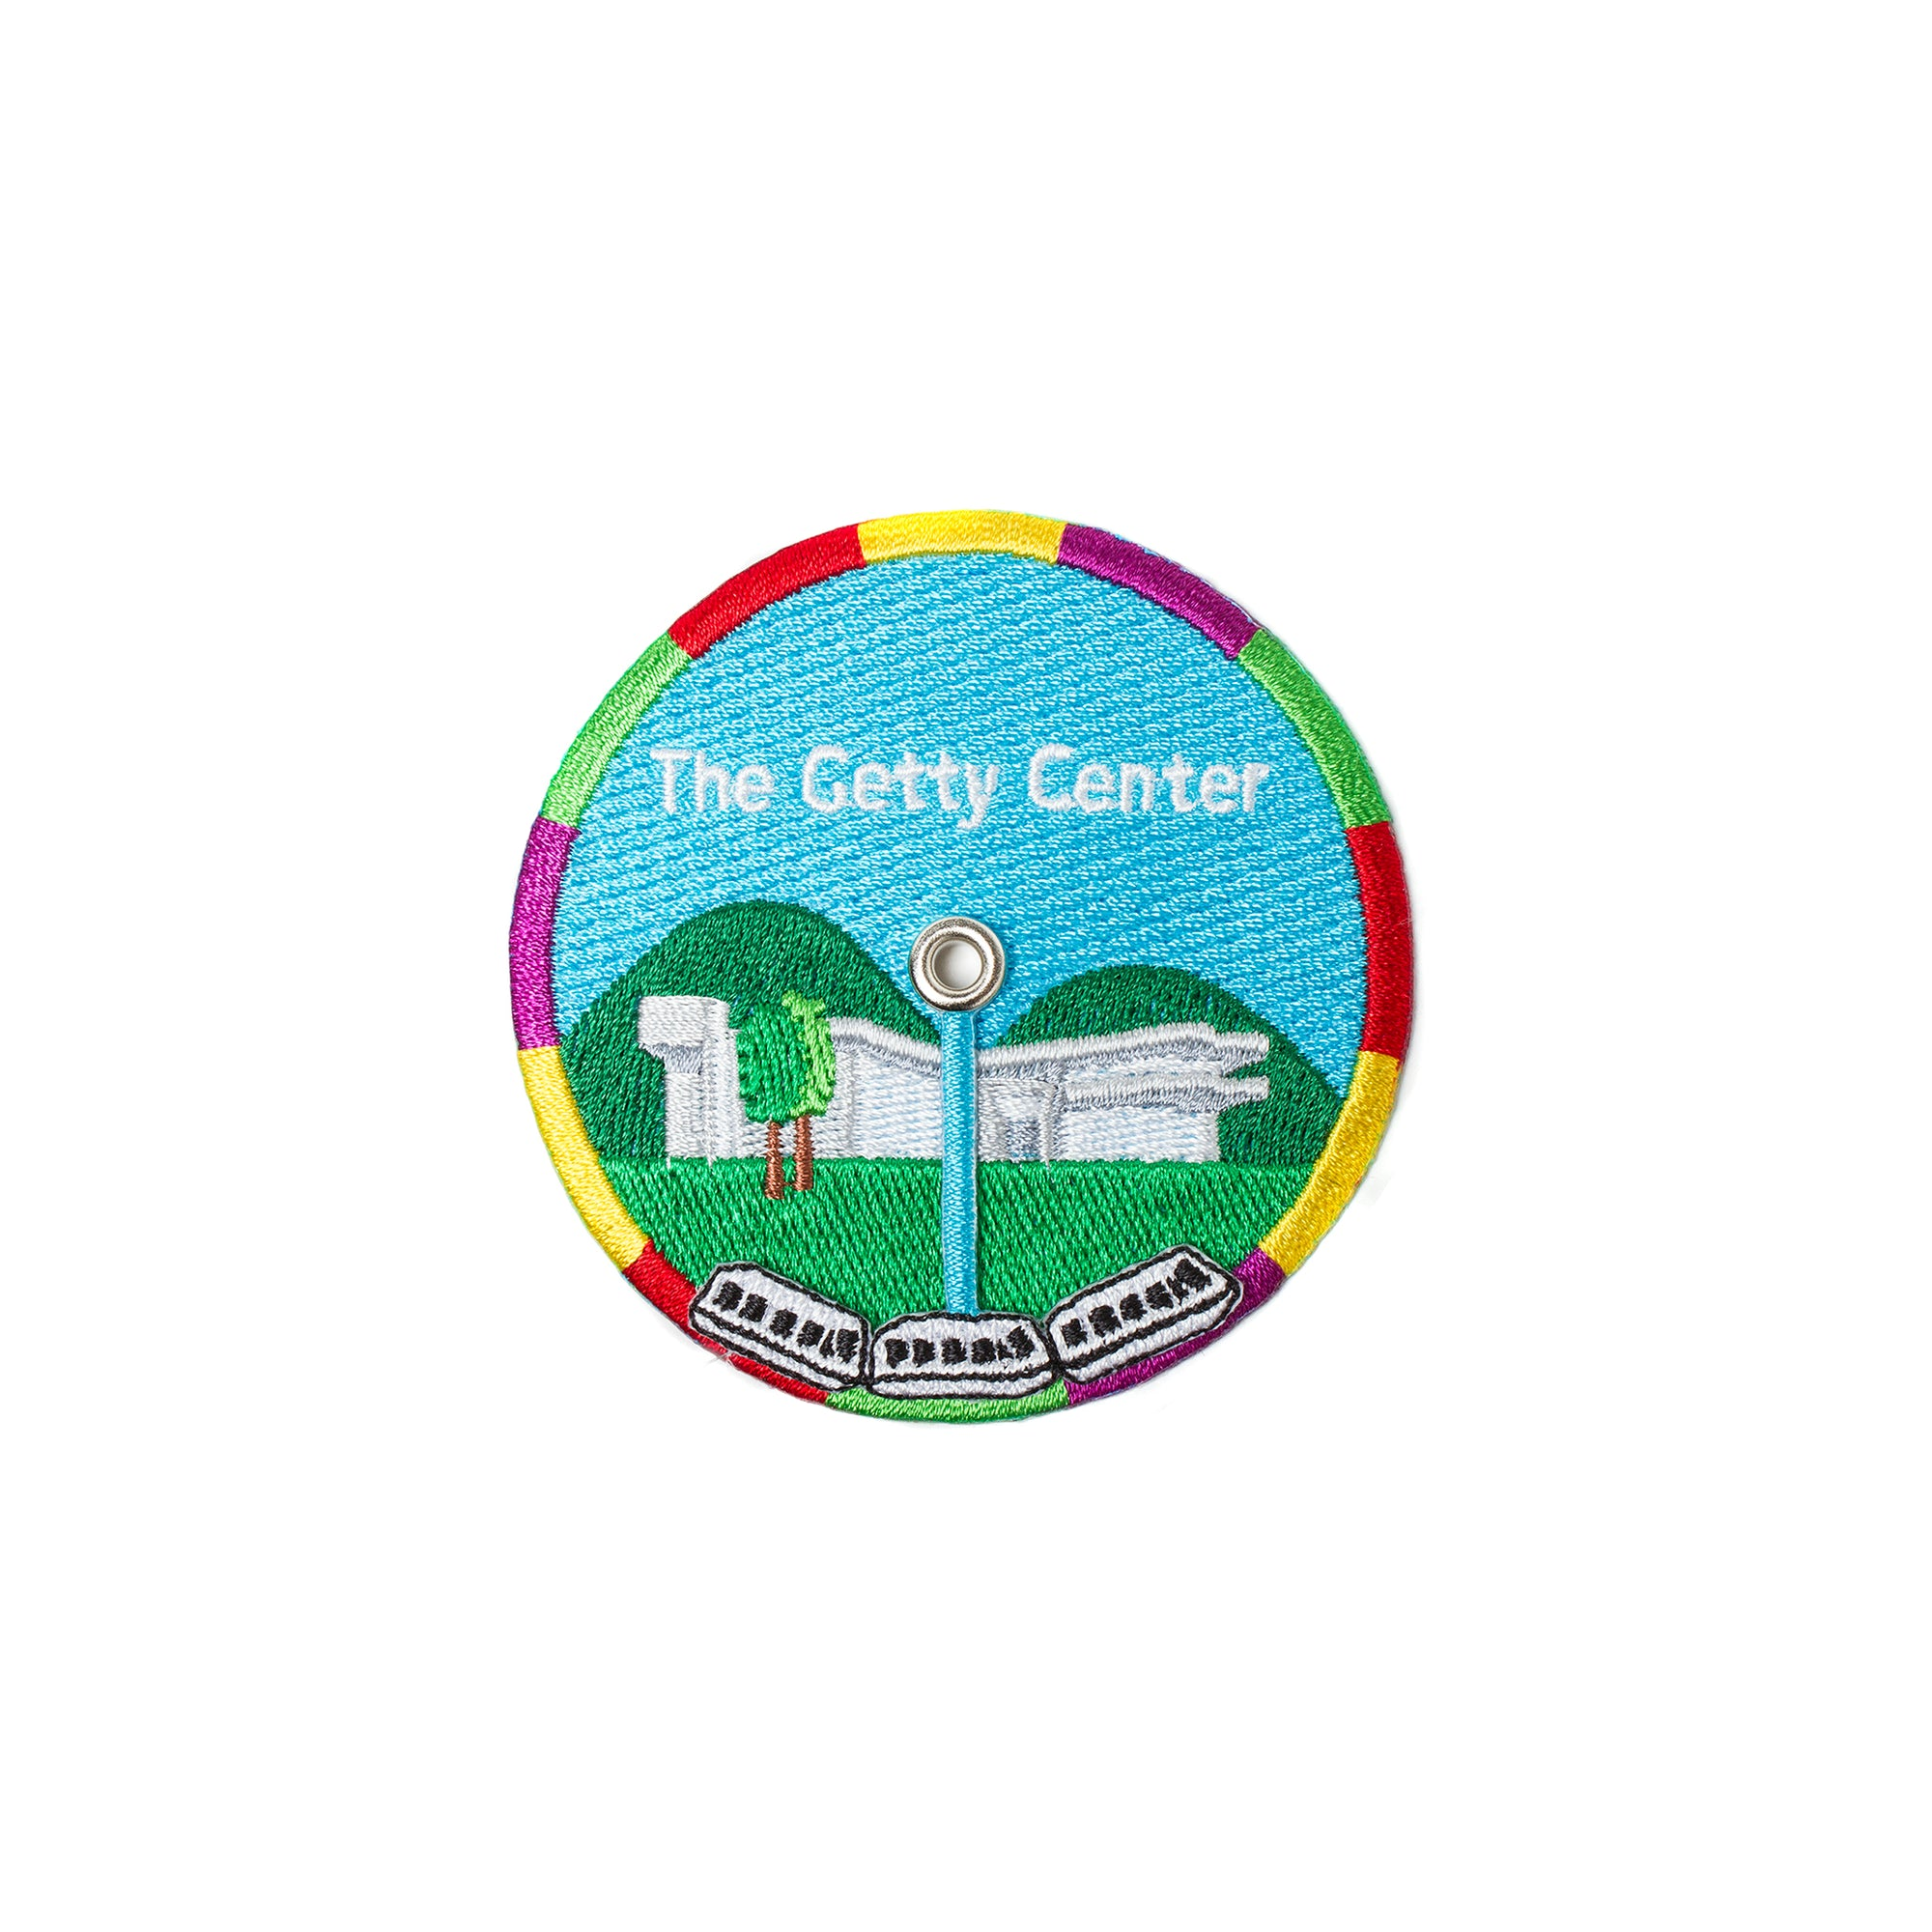 Getty Center Collector Patch | Getty Store